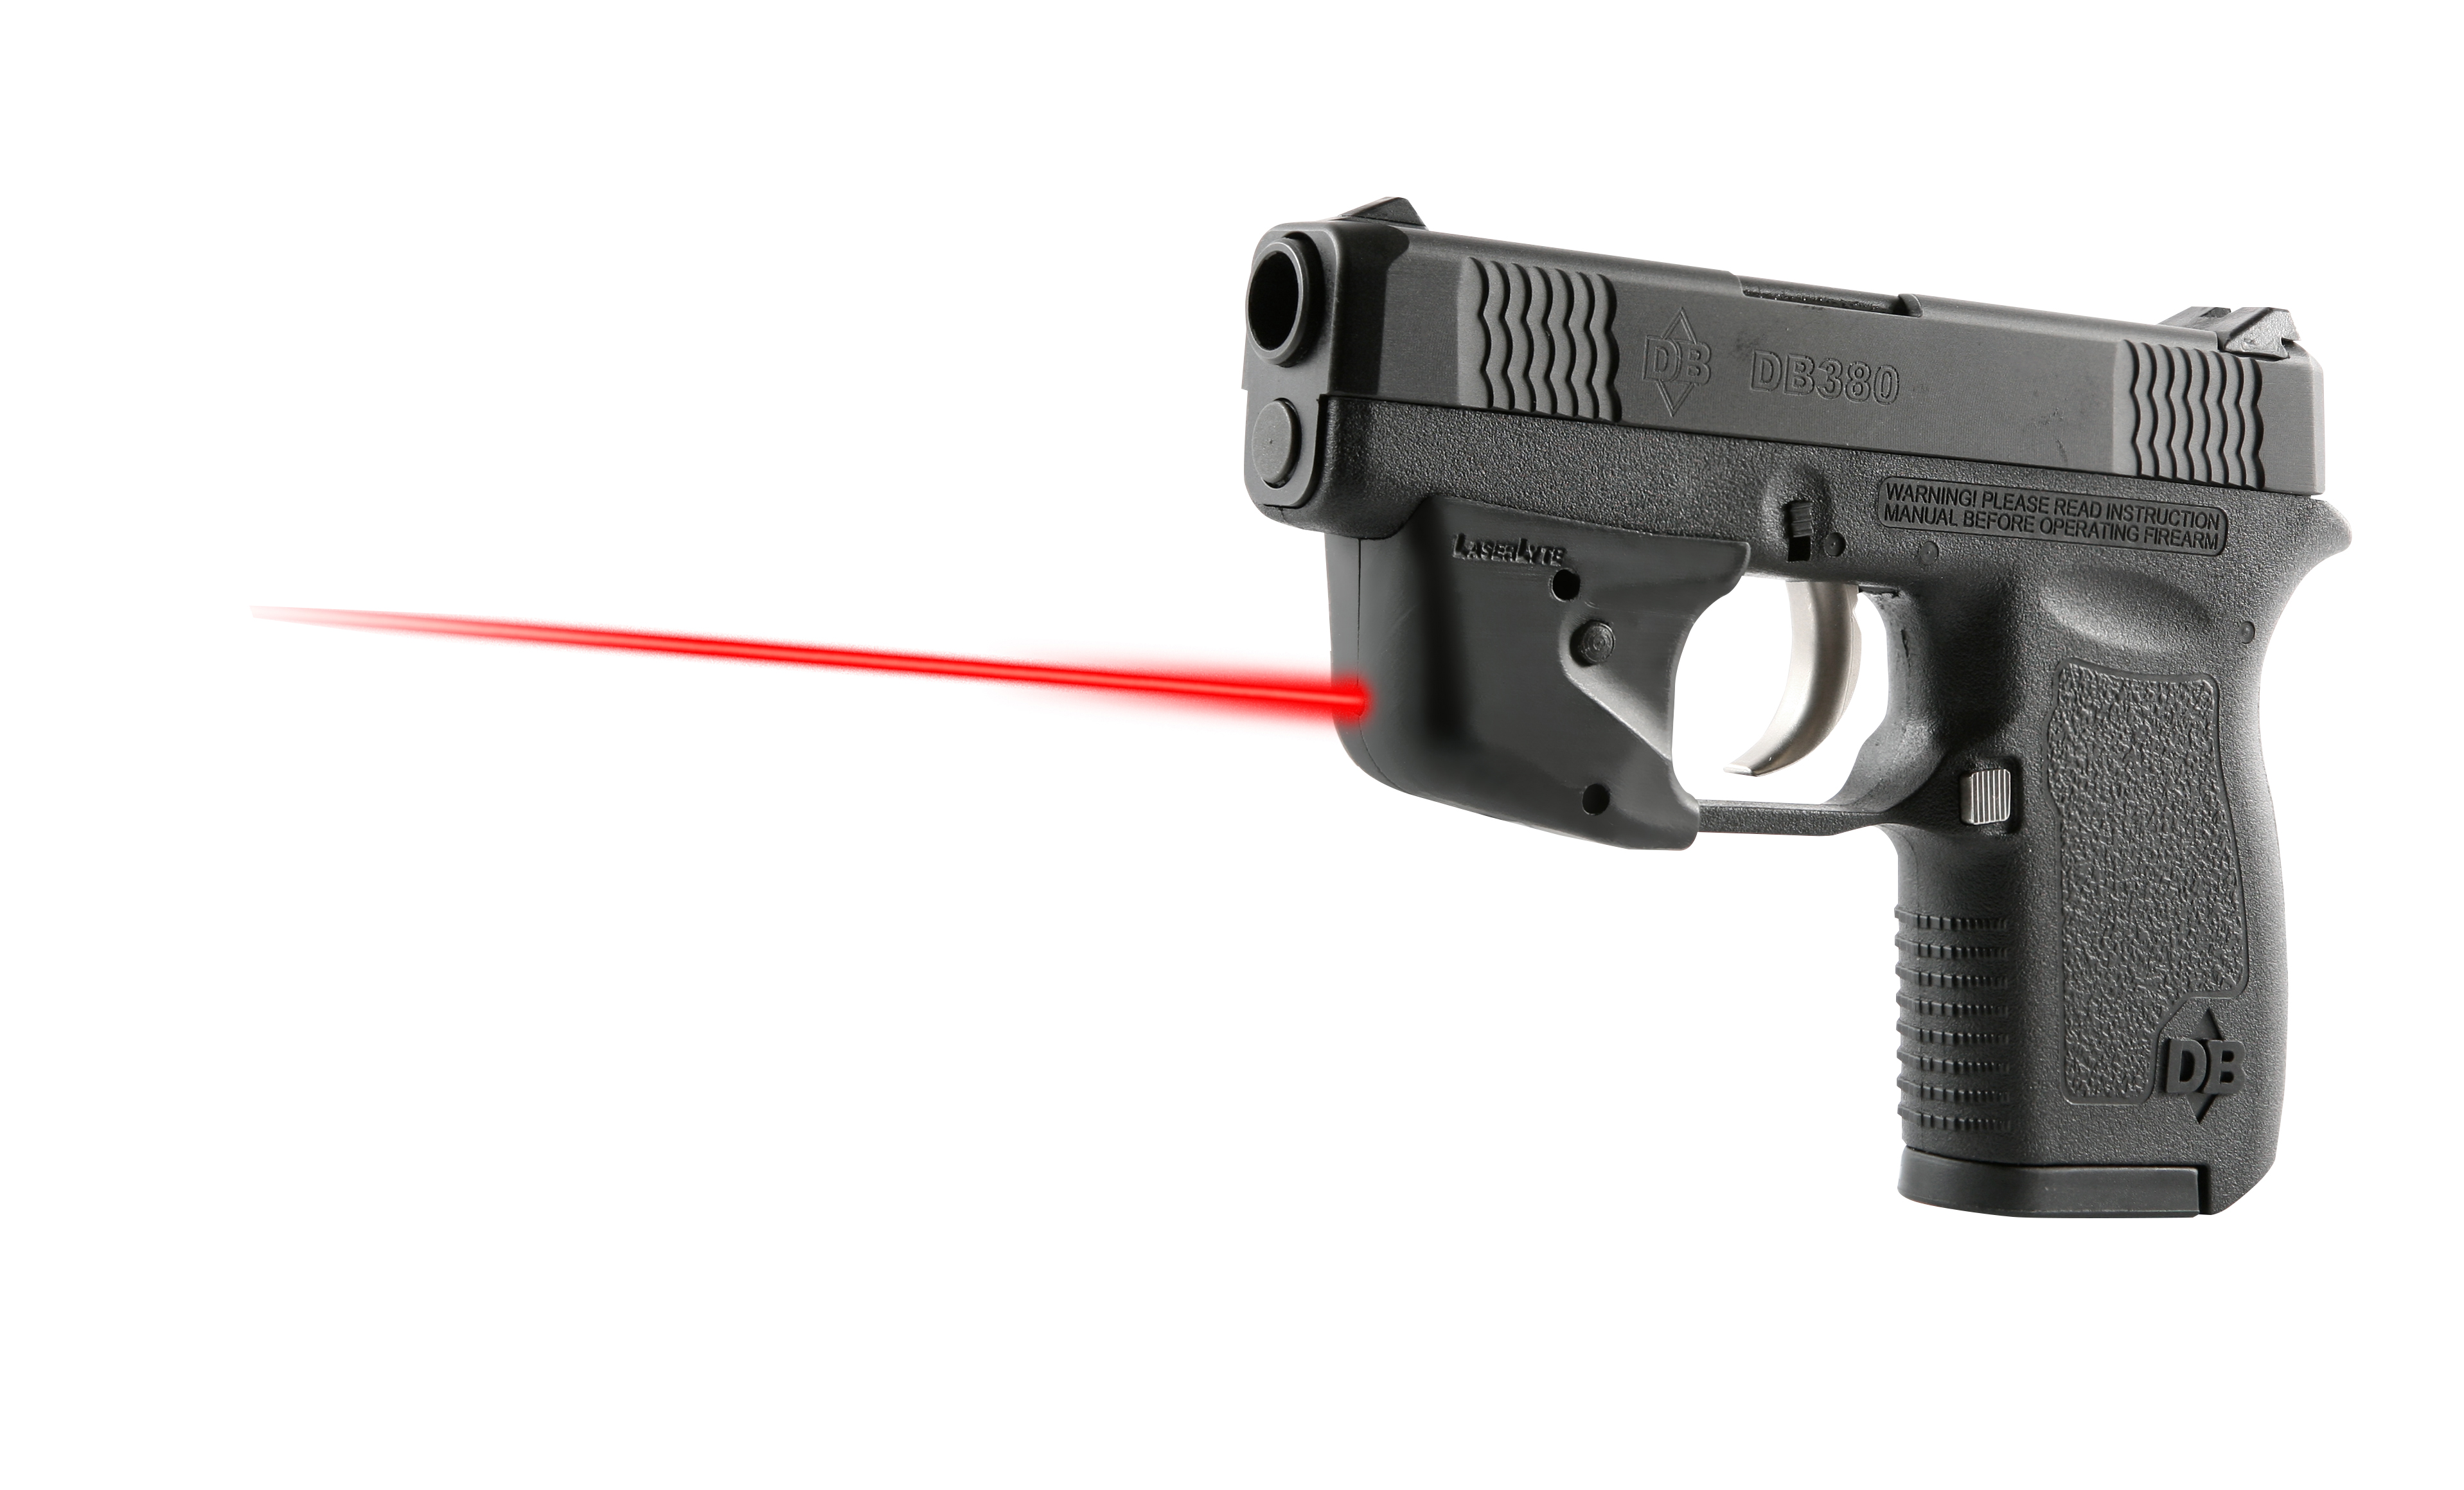 Diamondback Micro-Compact Pistols Available with LaserLyte Sights